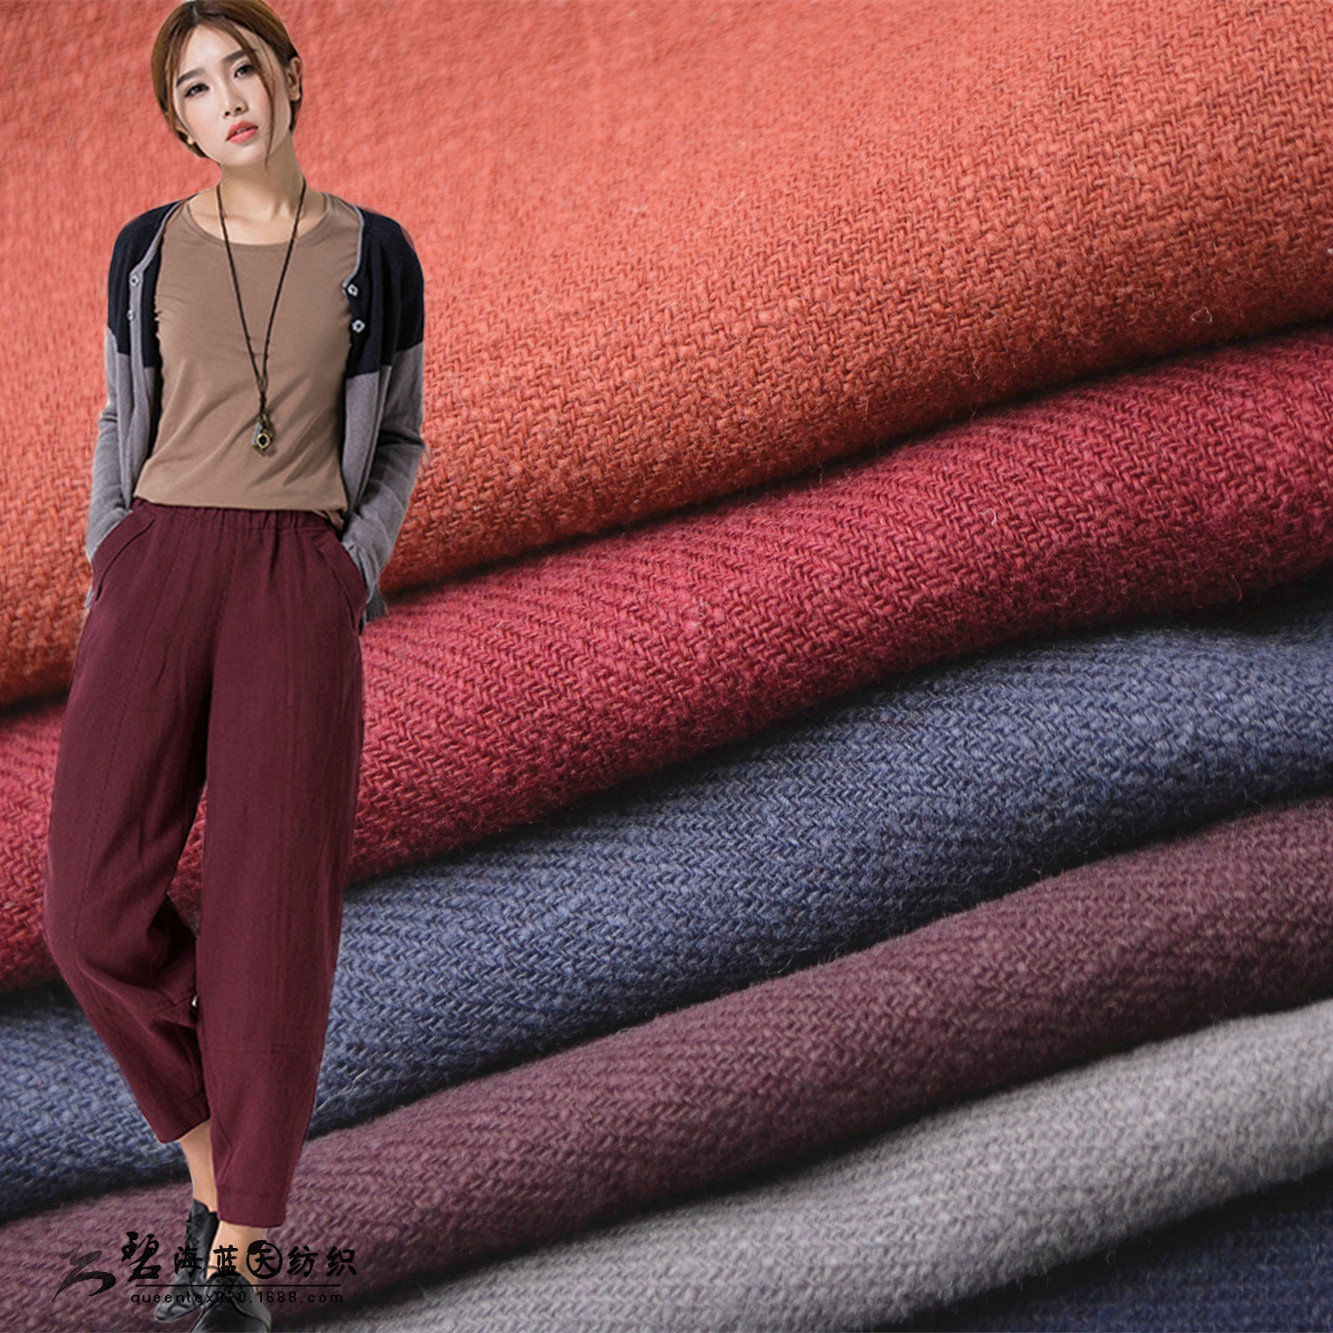 Thickened 8 * 8 pure ramie twill ramie fabric l034 autumn winter pants suit coat fabric